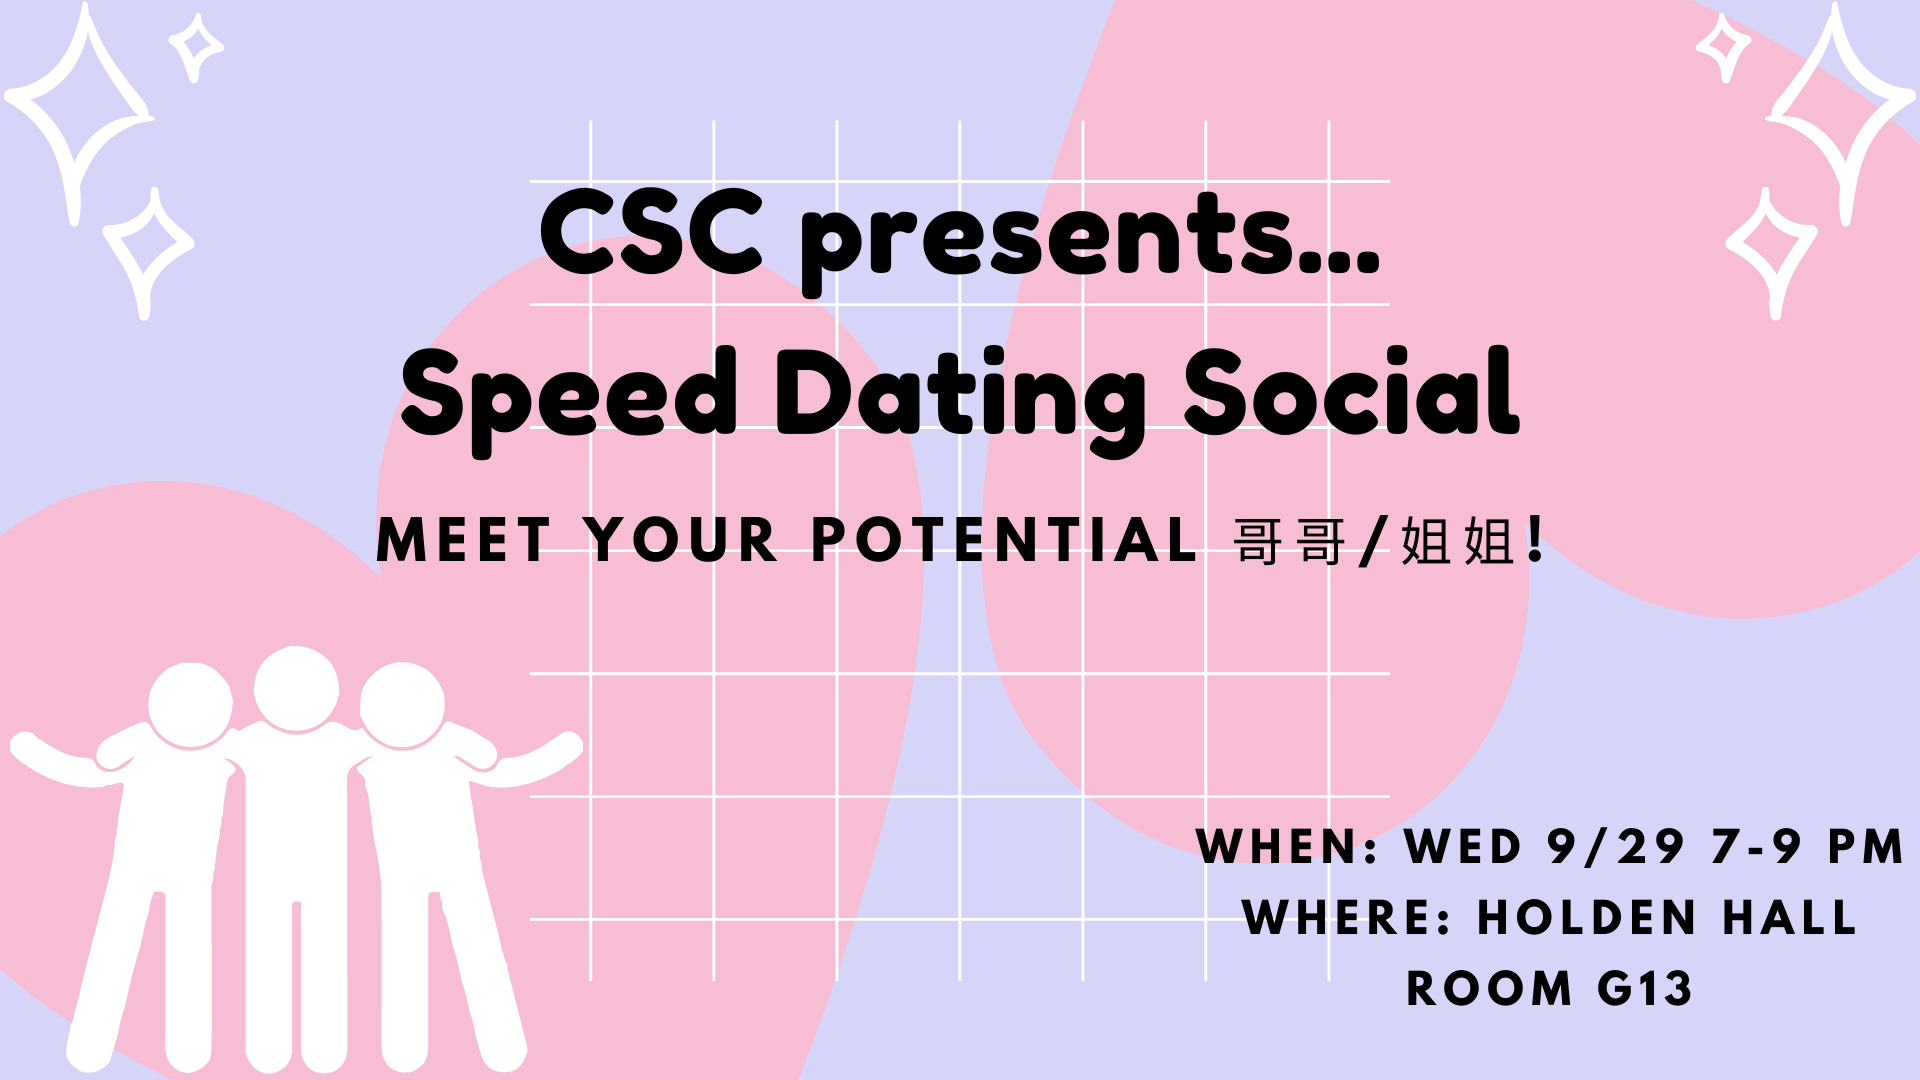 CSC: Speed Dating Social @ Holden Hall - Vincent Chin Memorial Room